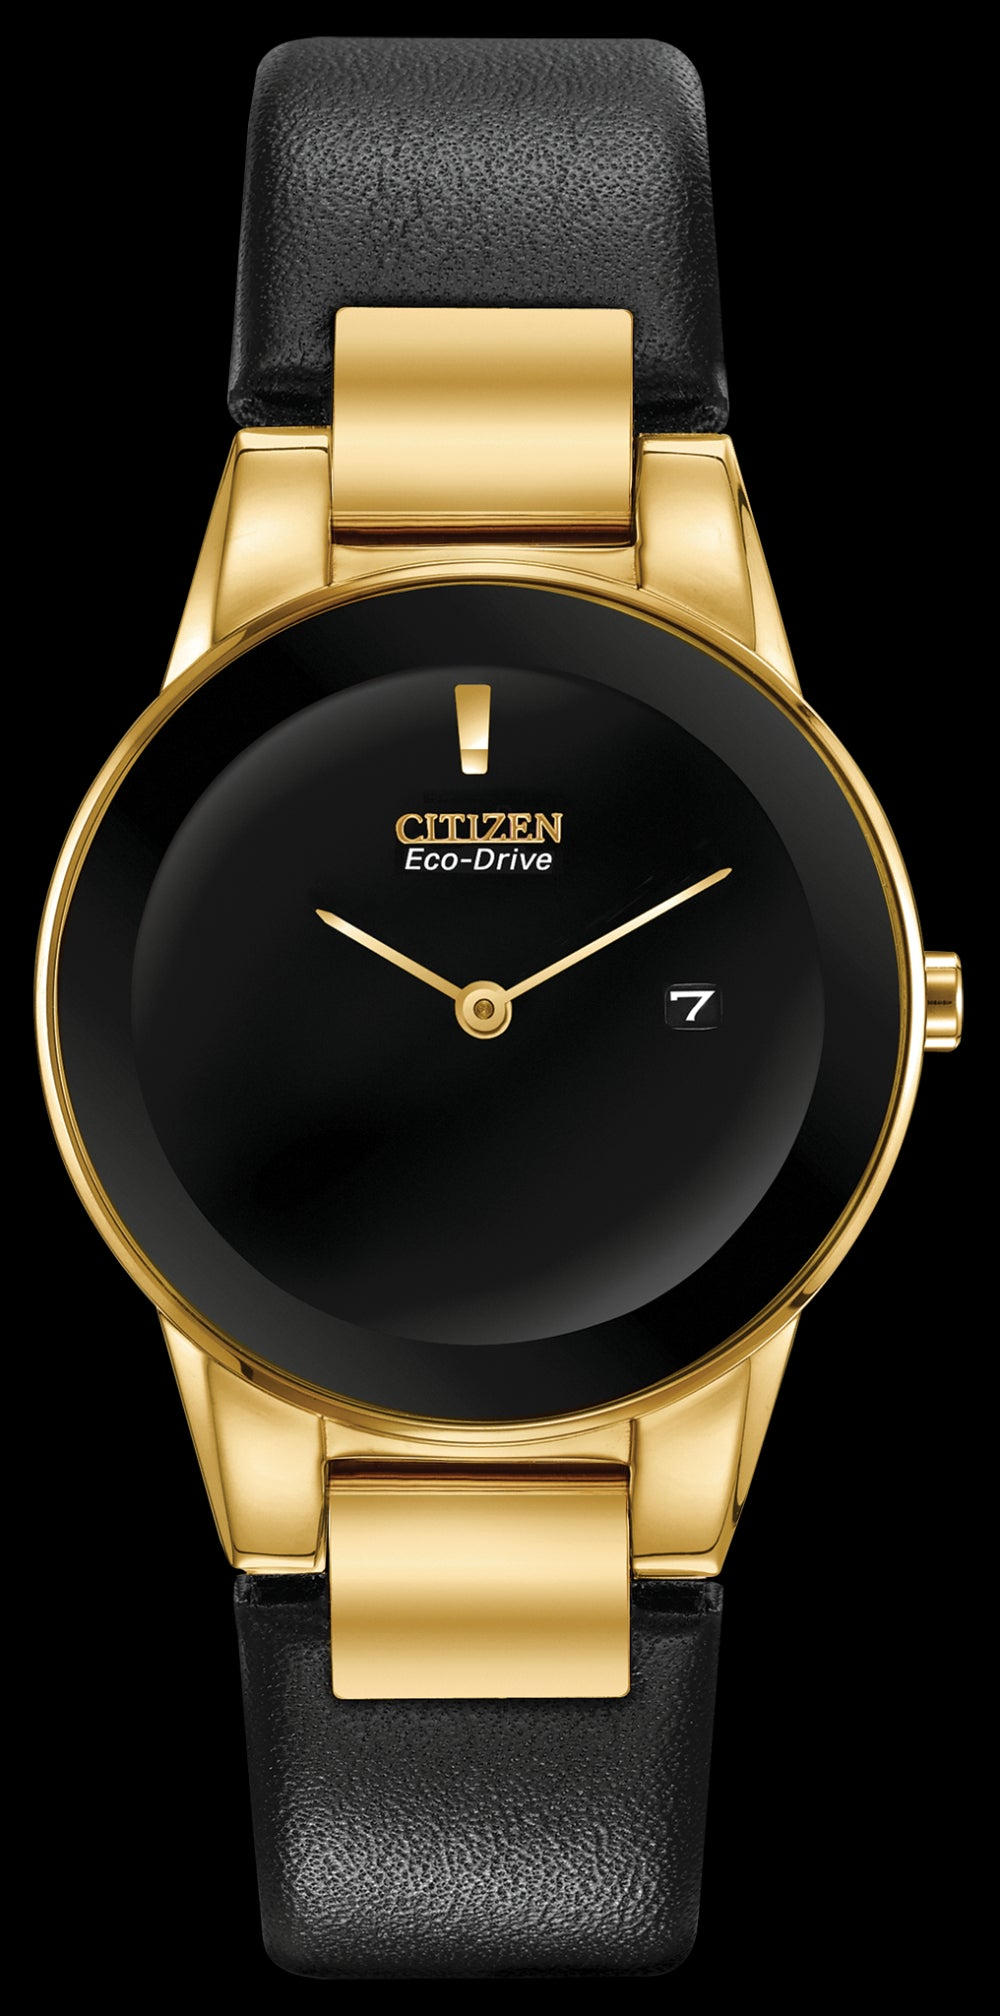 Citizen Ladies Gold Tone Watch With Black Dial And Black Leather Band